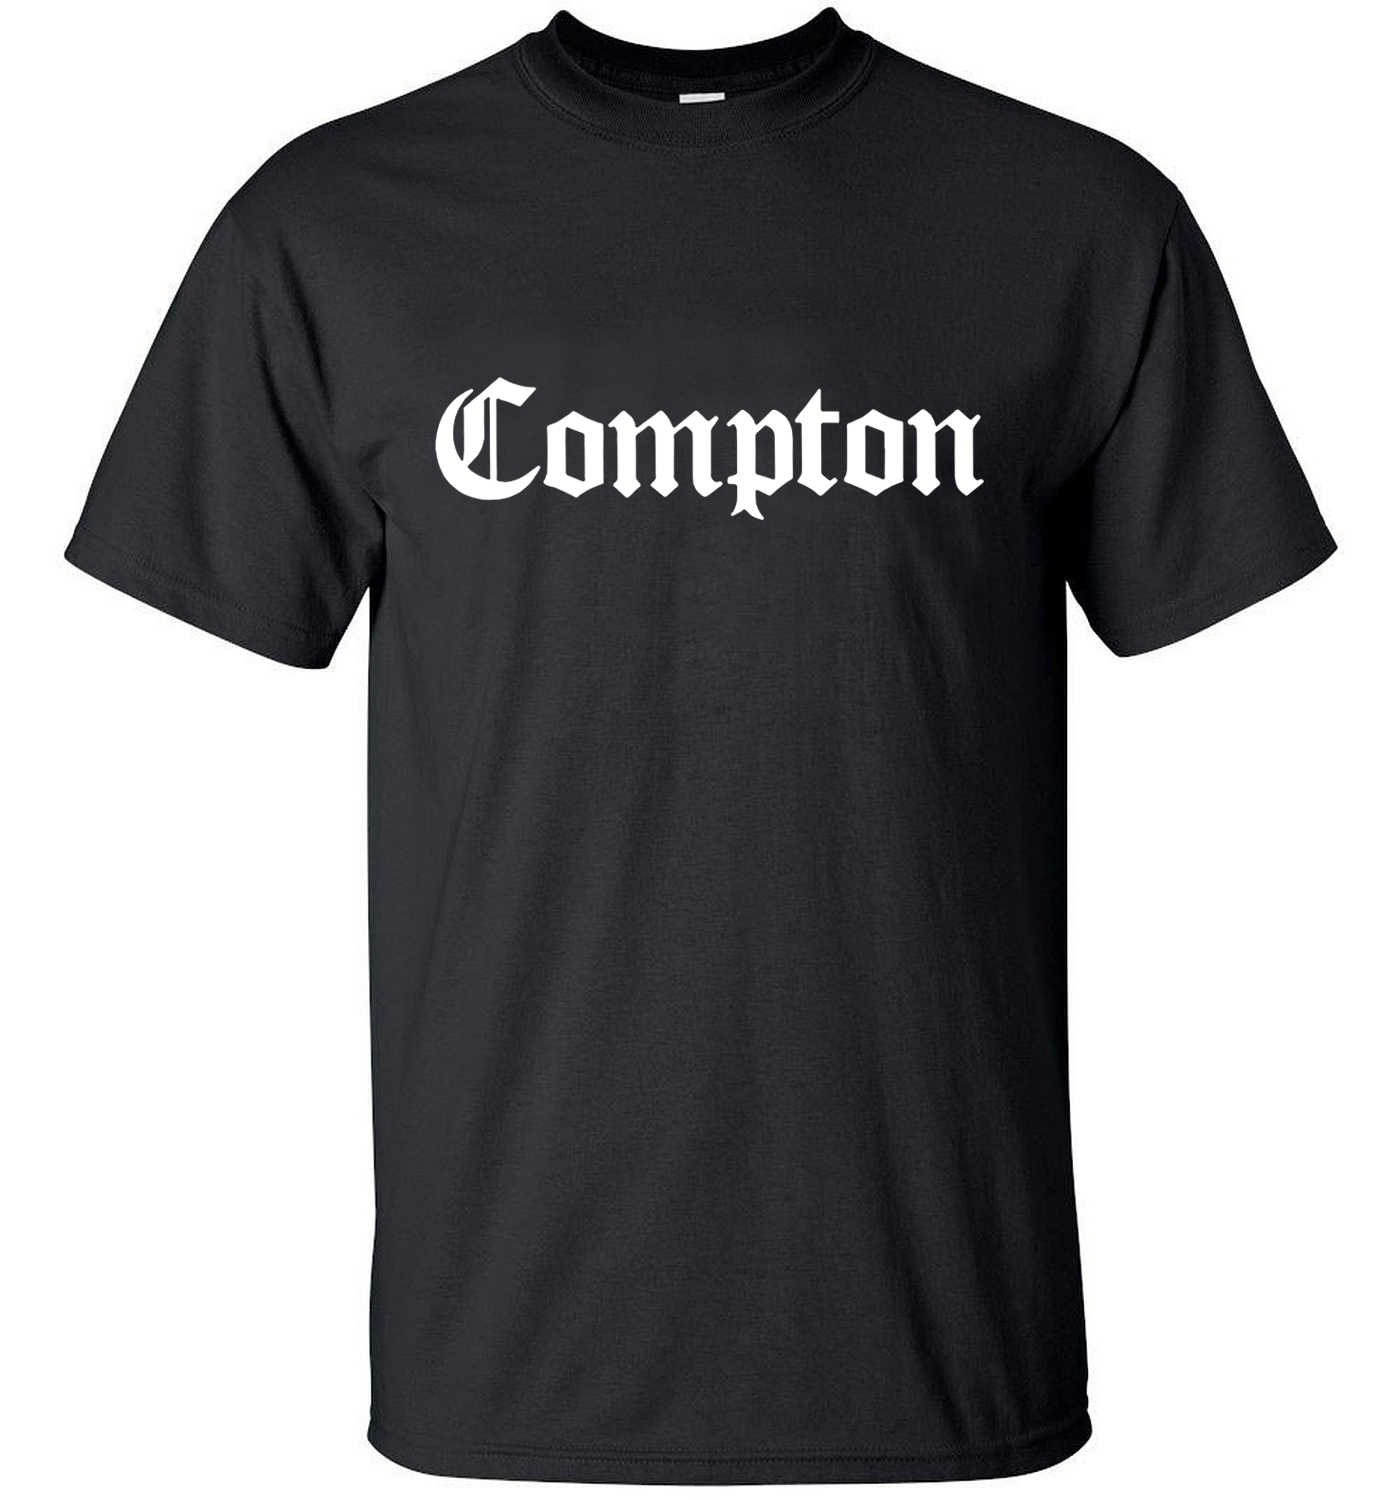 2020 sommer neue Mode streetwear COMPTON Männer T-Shirts hip hop Tops Tees 100% baumwolle hohe qualität marke kleidung lose S-3XL